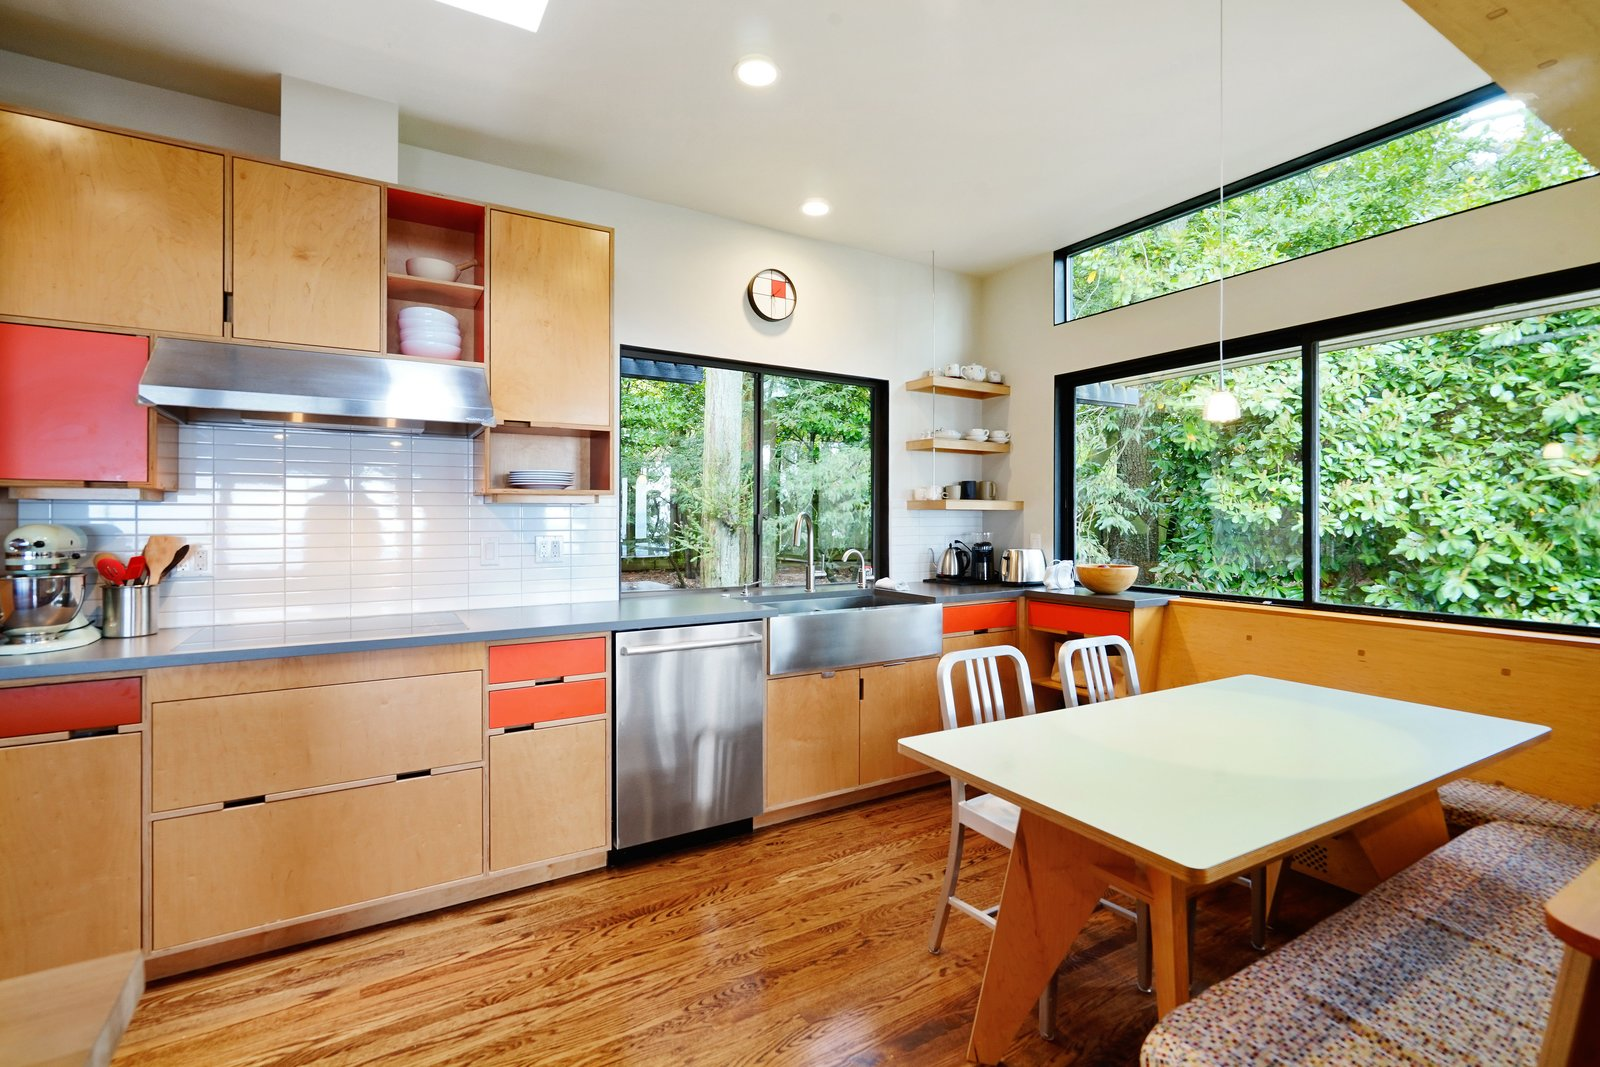 The kitchen also has a strong sense of the outdoors.